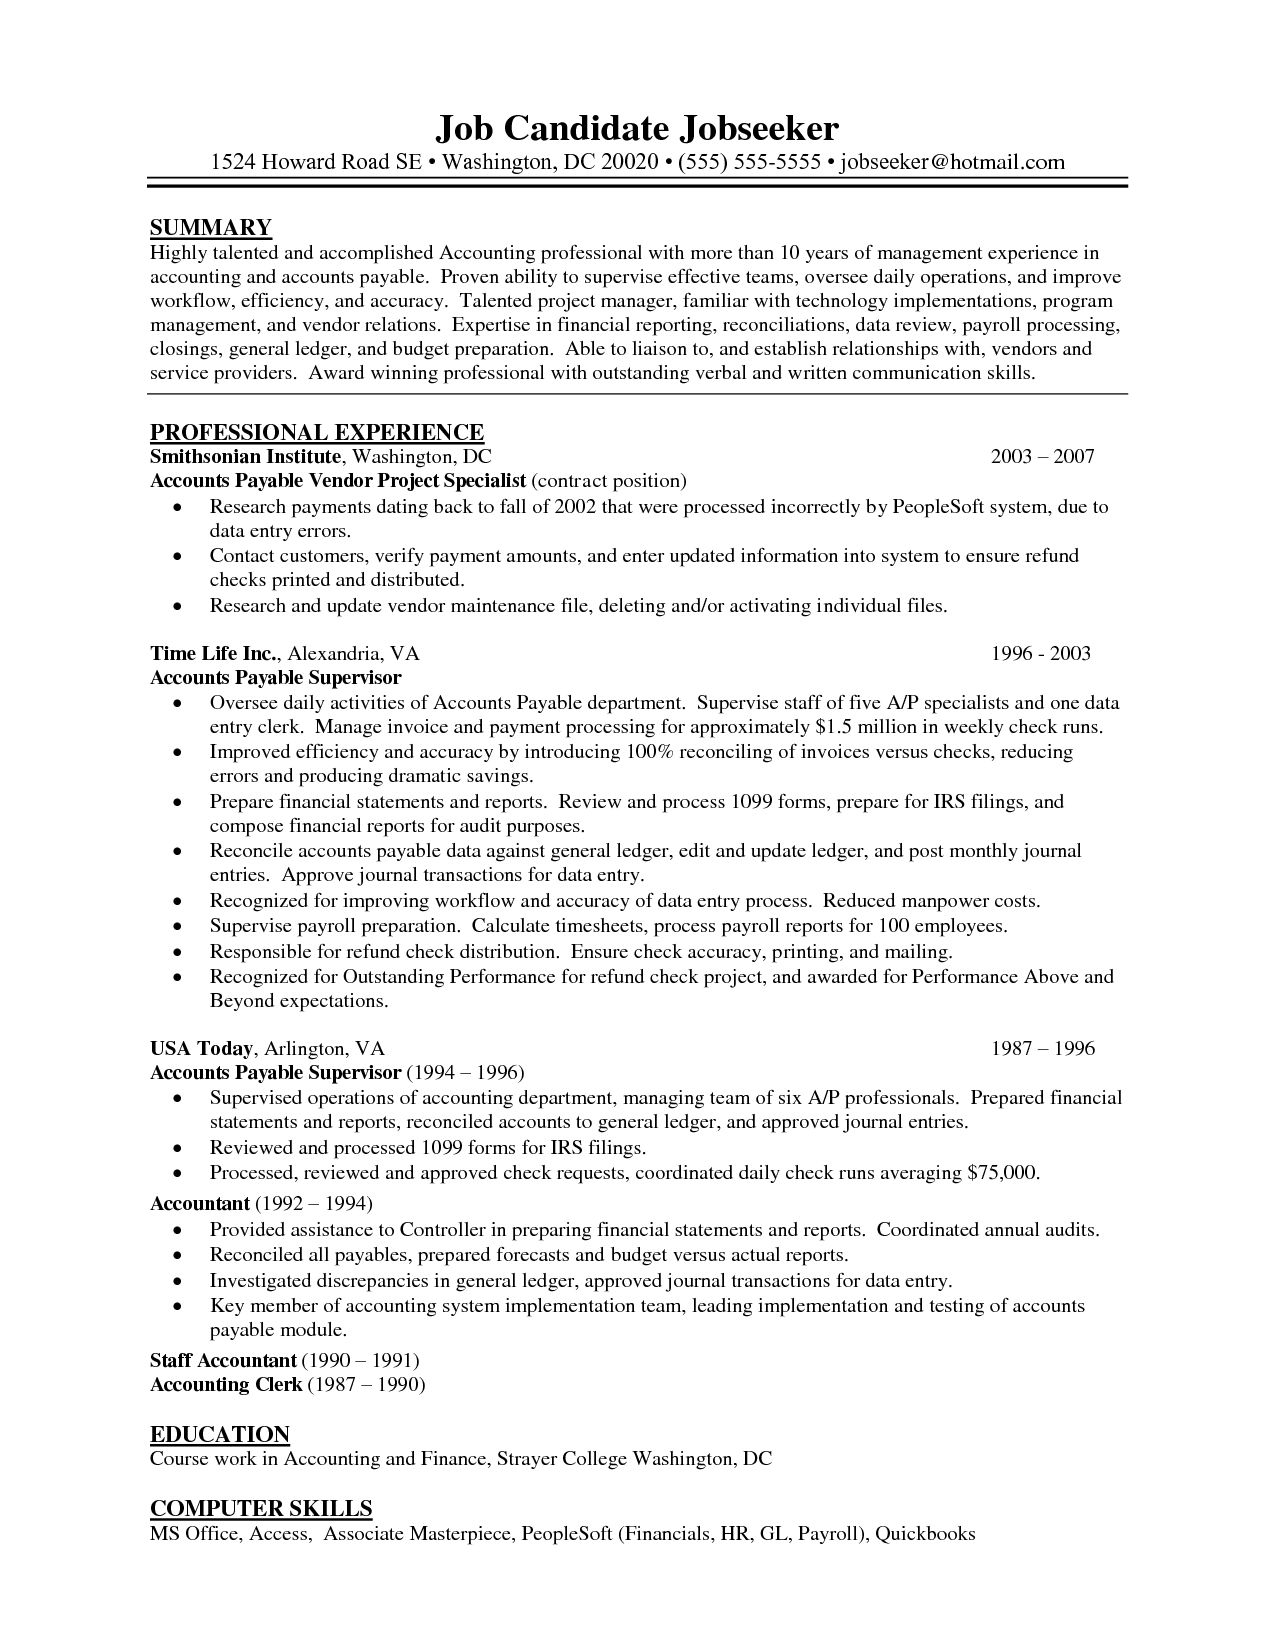 Accounts Payable Resume Samples Amazing Resume Examples Accounts Payable  Pinterest  Resume Examples